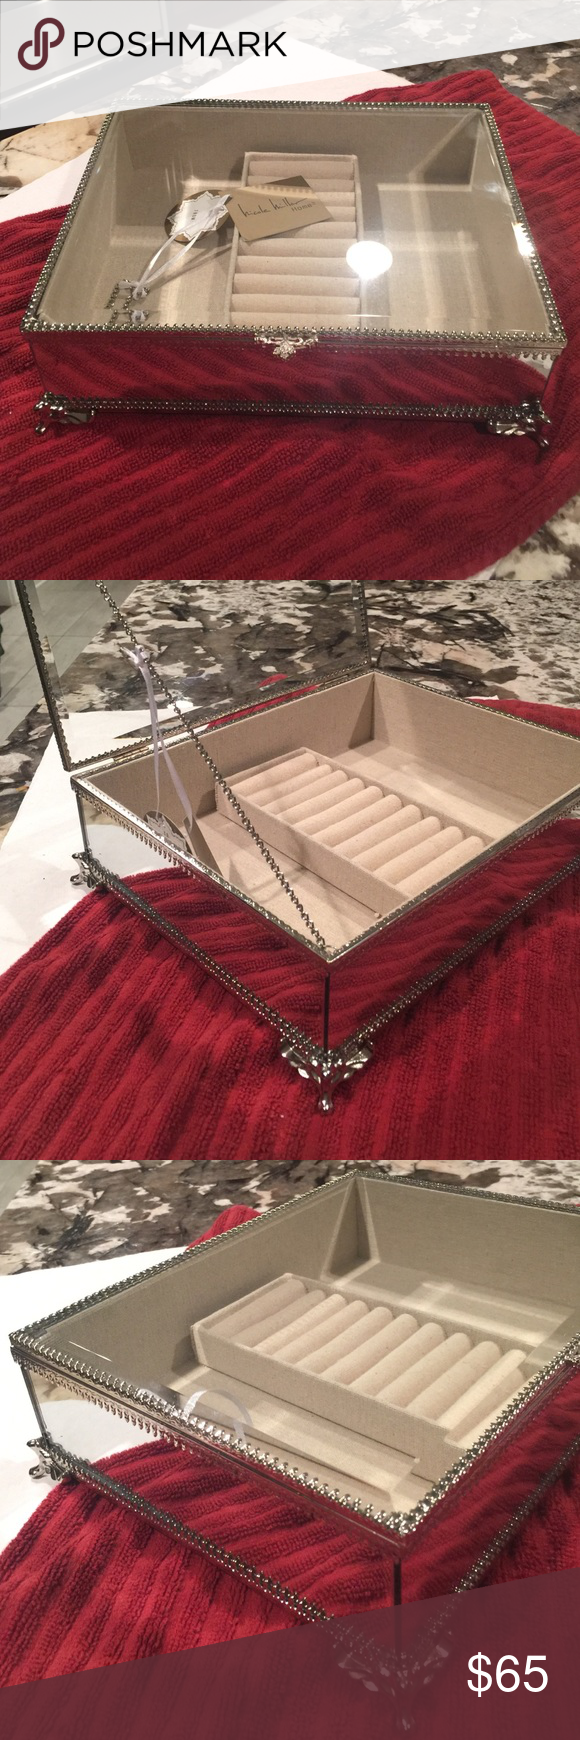 Nicole Miller Jewelry Box Fascinating Nwt Nicole Miller Mirrorglass Jewelry Box Mirrored Sides Glass Top Inspiration Design